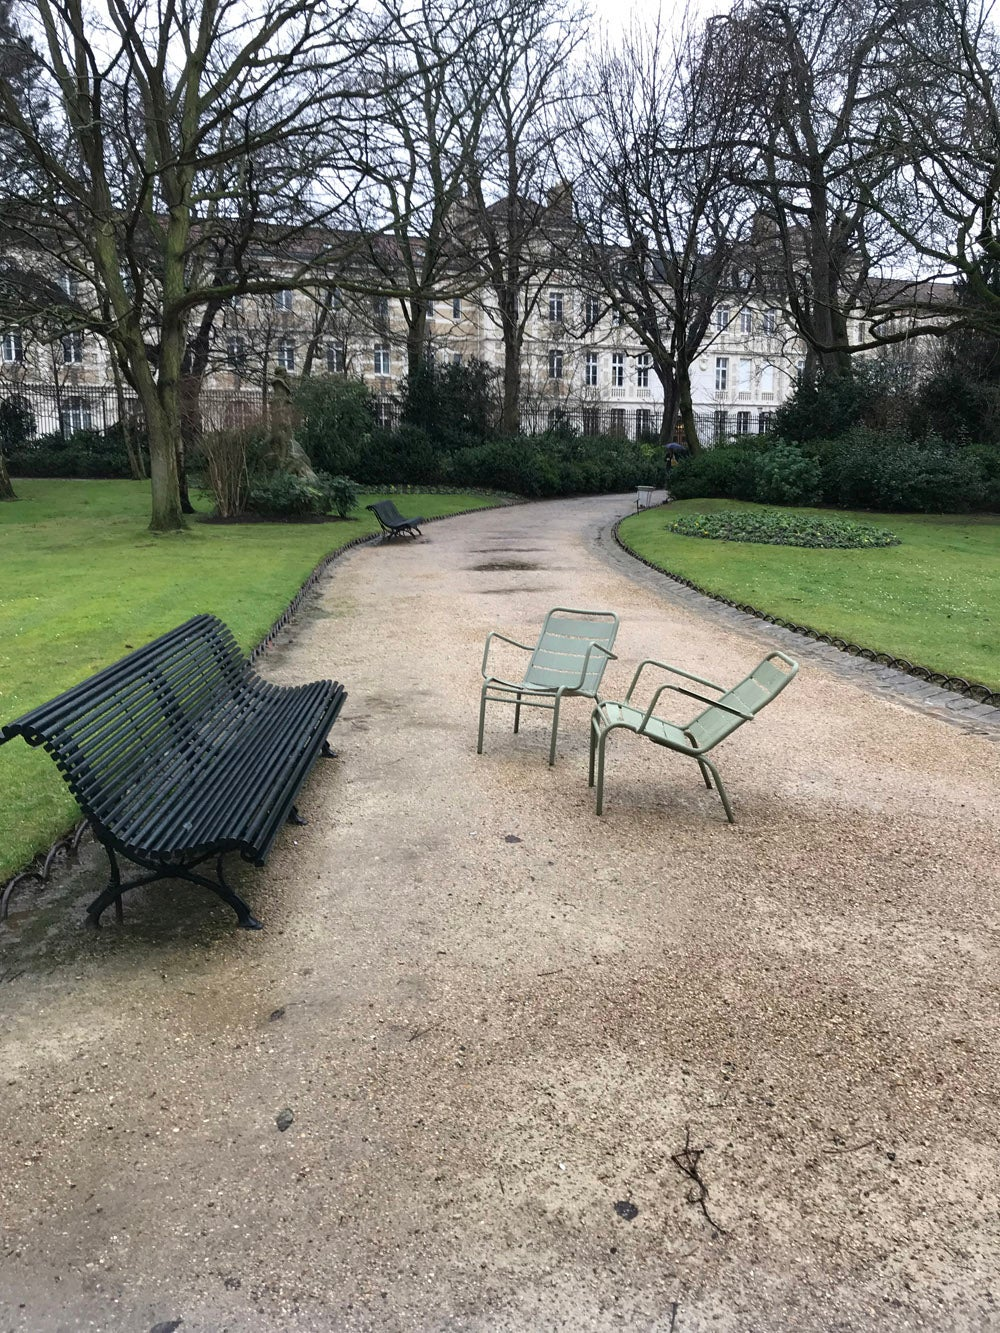 Chairs and benches arranged in a circle